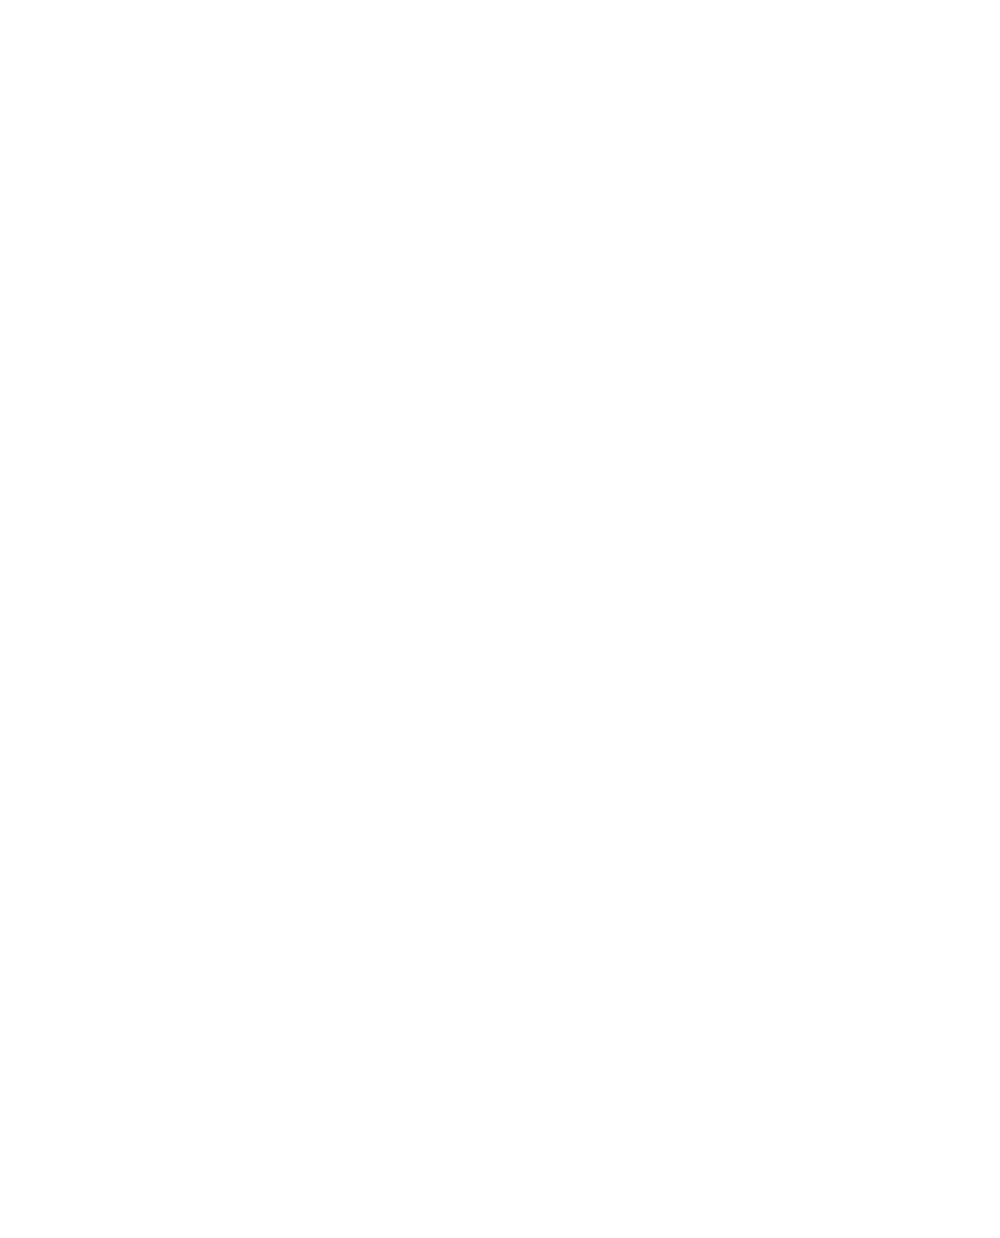 WAKHT Vouchers for Xmas